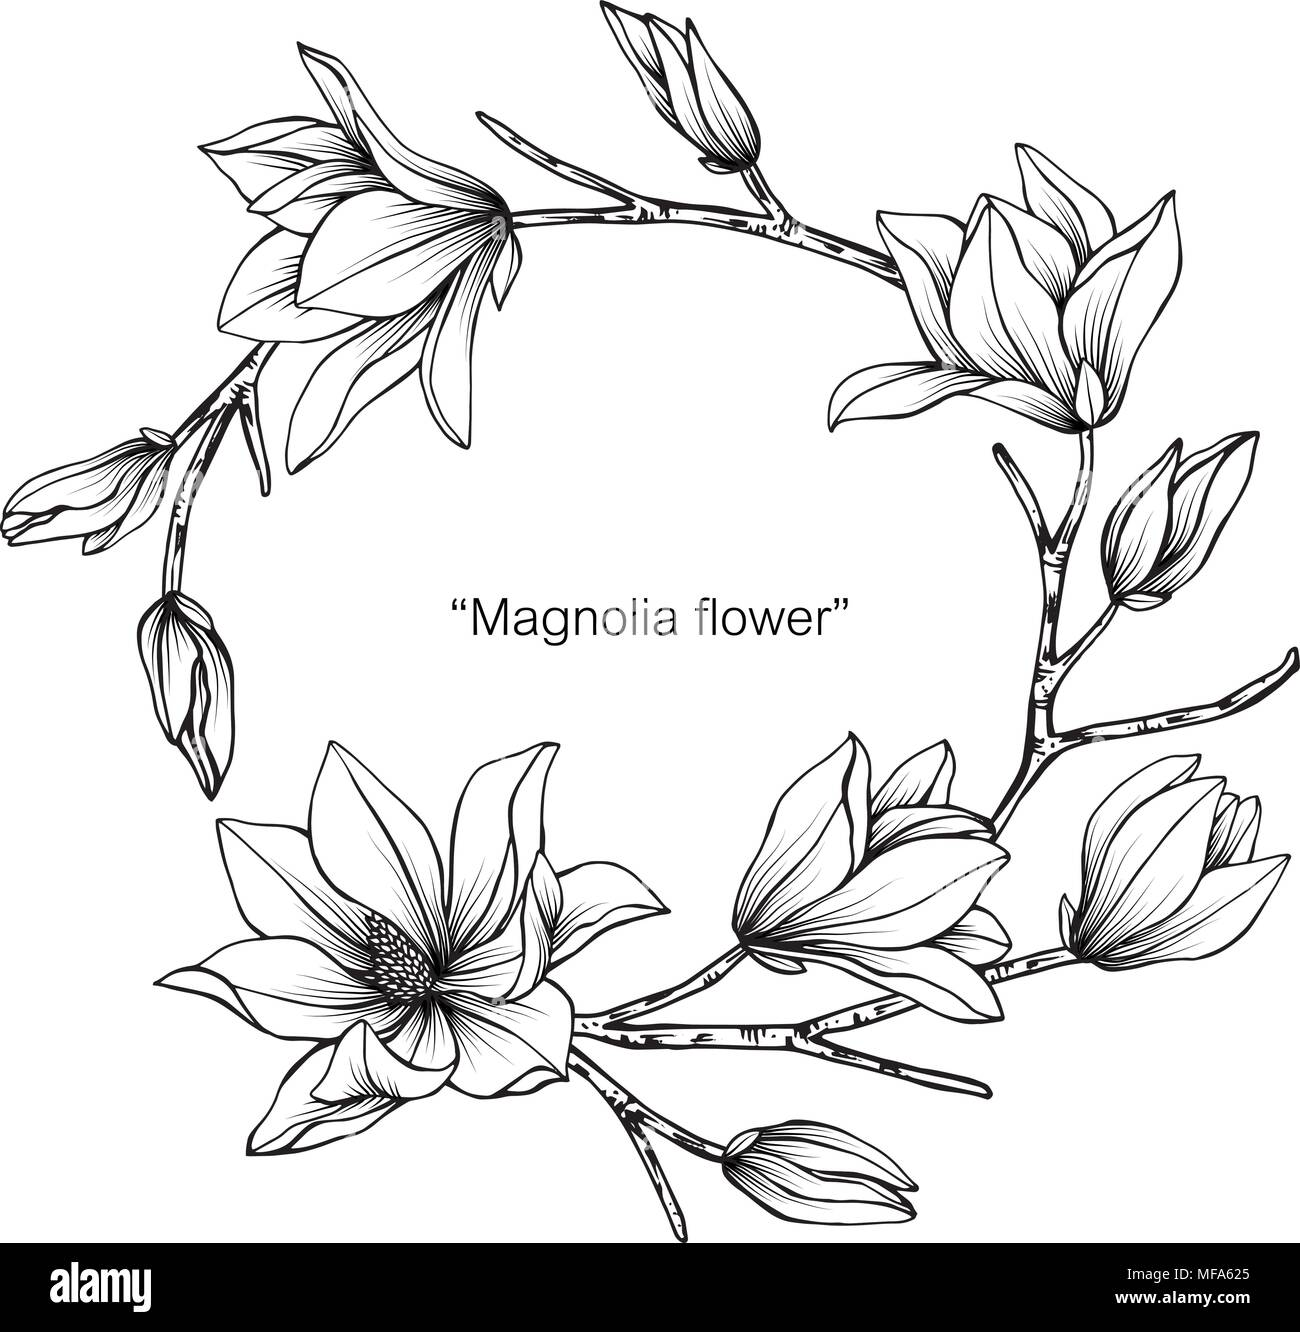 Magnolia Flower Line Drawing : Magnolia flower frame drawing illustration for invitation